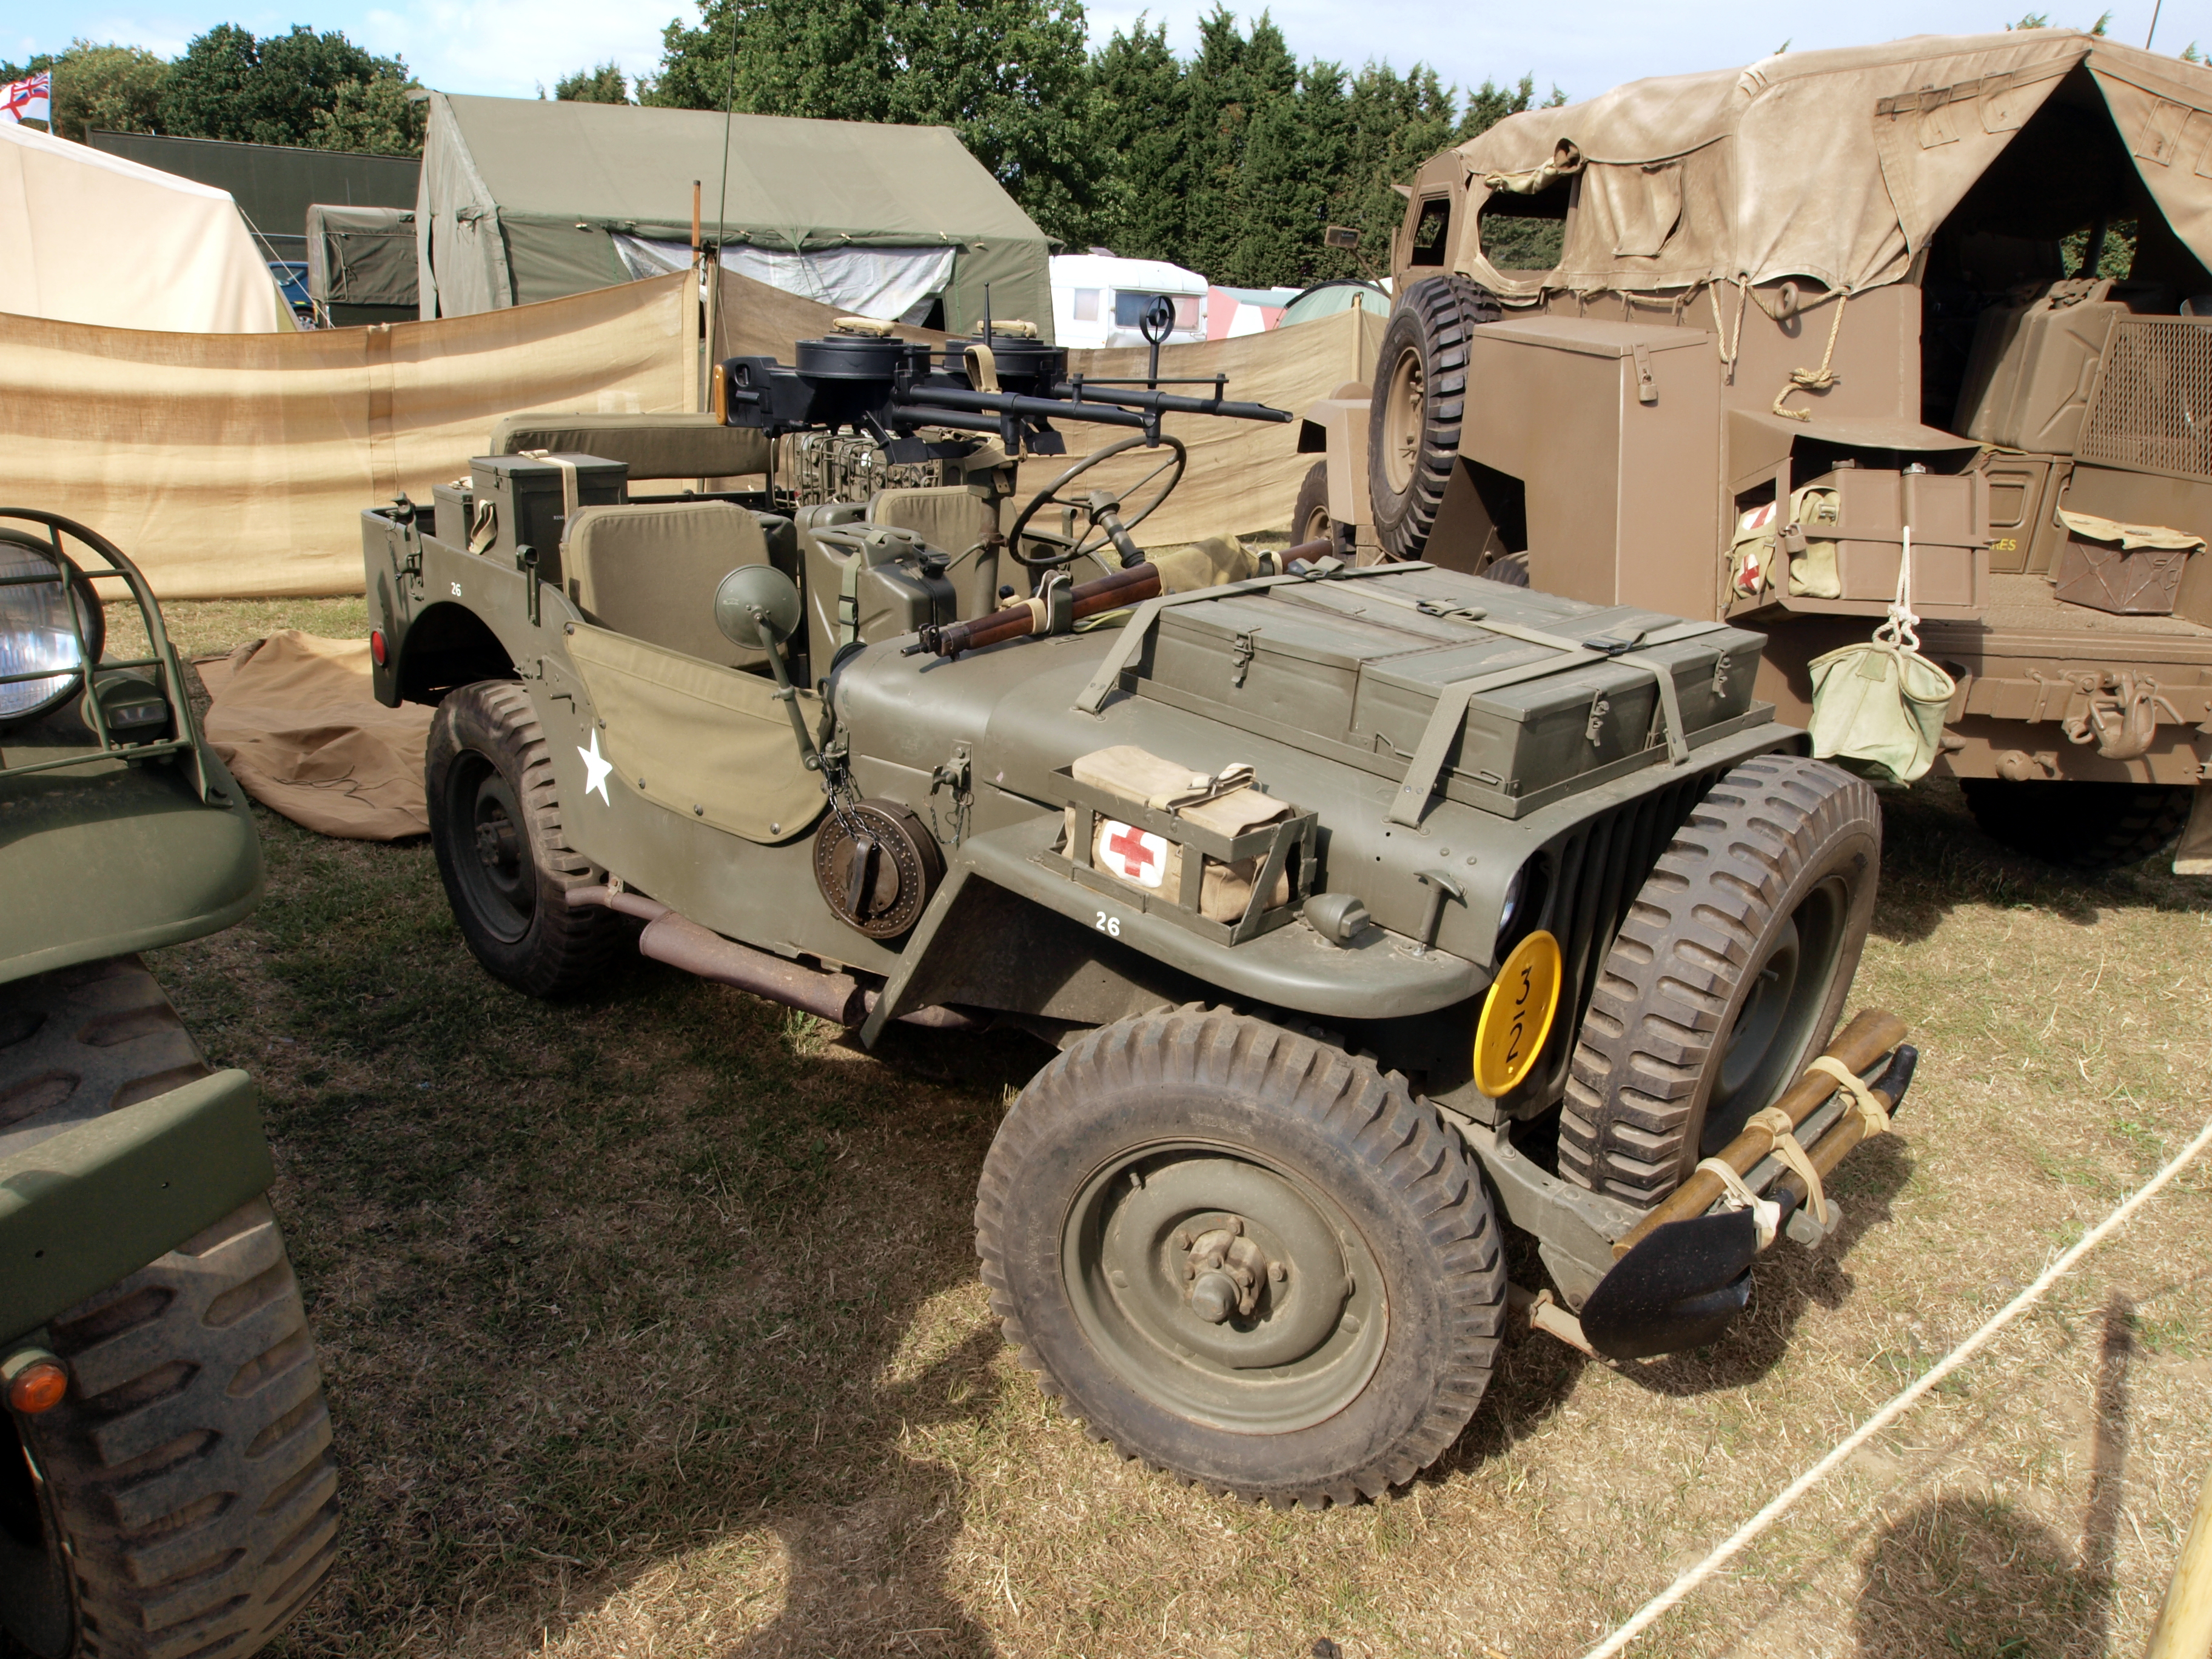 Jeep Willys #13